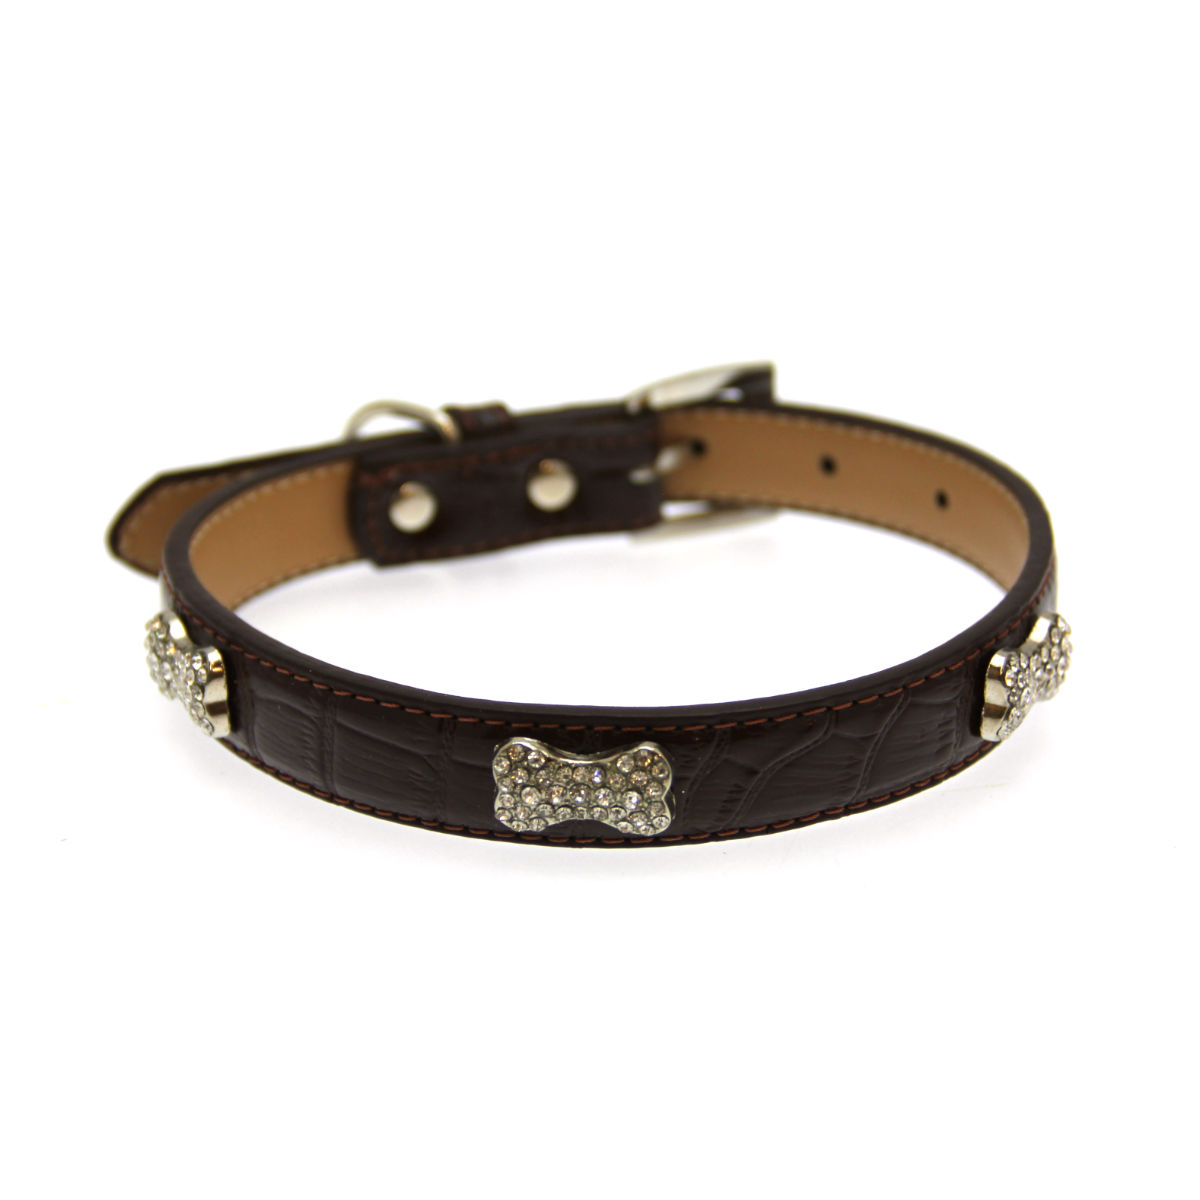 Faux Leather Crystal Bone Dog Collar by Doggie Design - Chocolate Brown